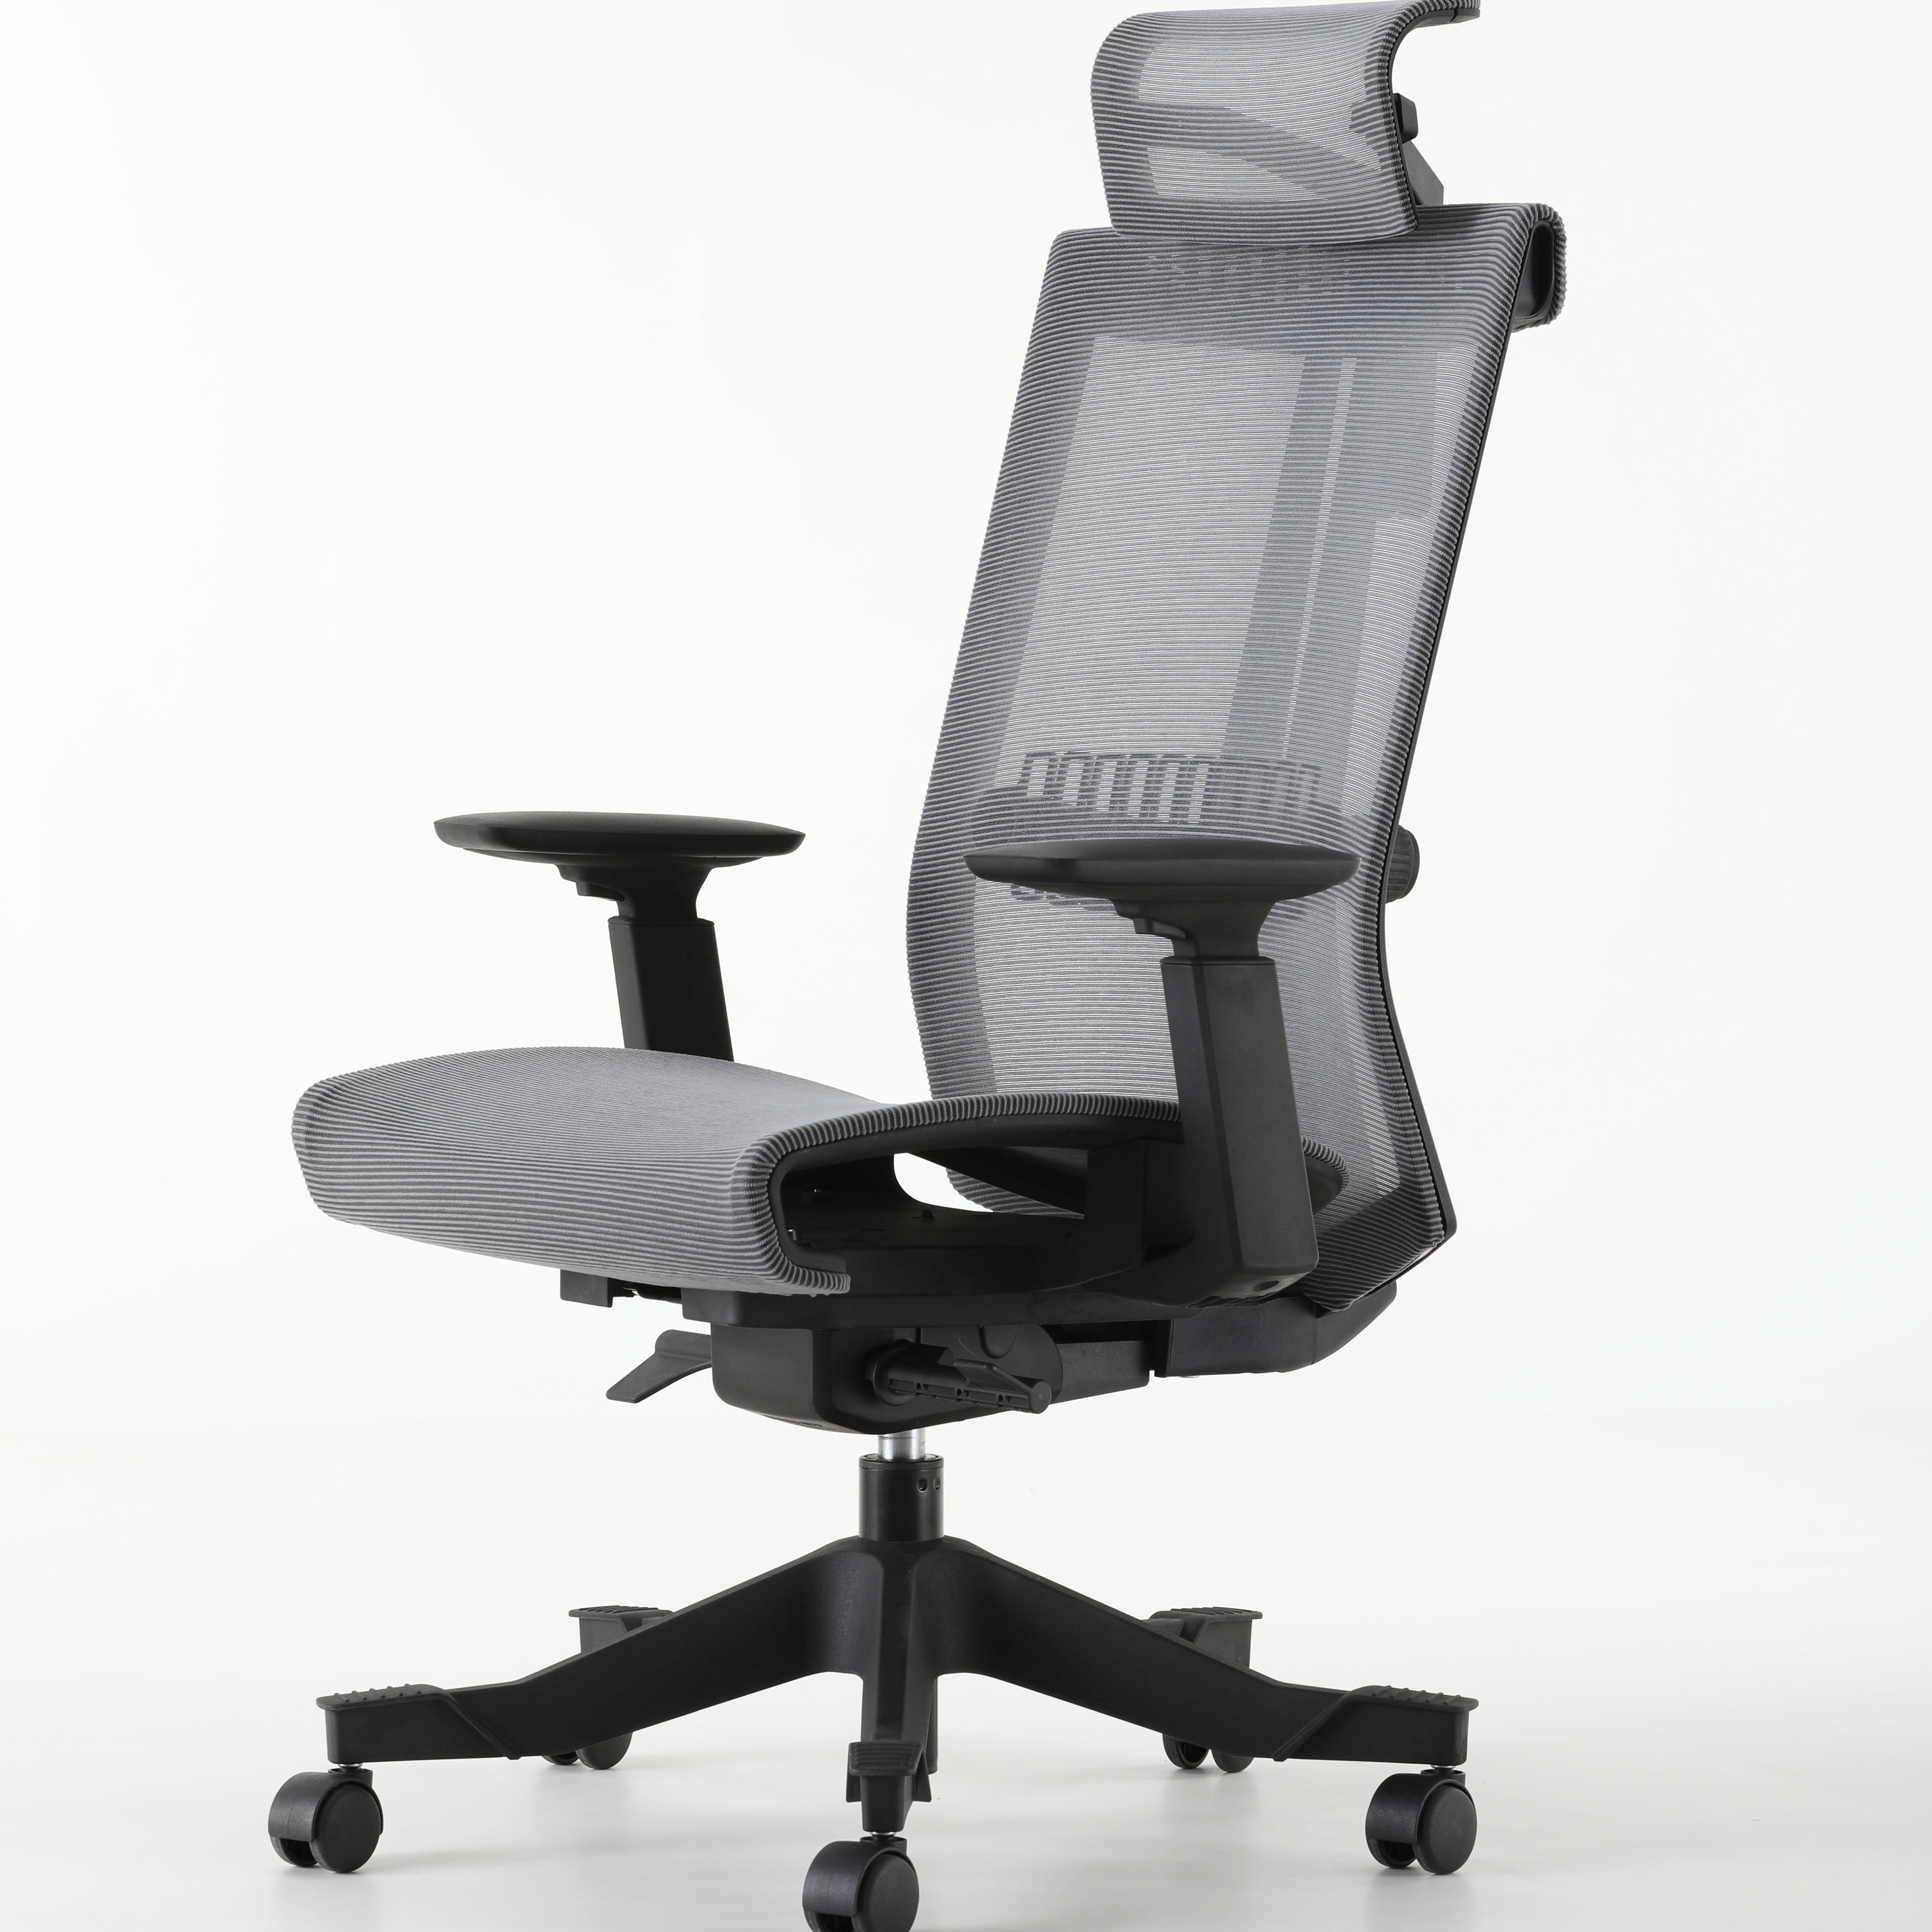 Motostuhl Chair Comfortable Ergonomic Mesh Office Chair Best Price Office Chair Buy Ergonomic Mesh Office Chair Excutive Manager Chair Hot Sales New Fashion Chair Product On Alibaba Com